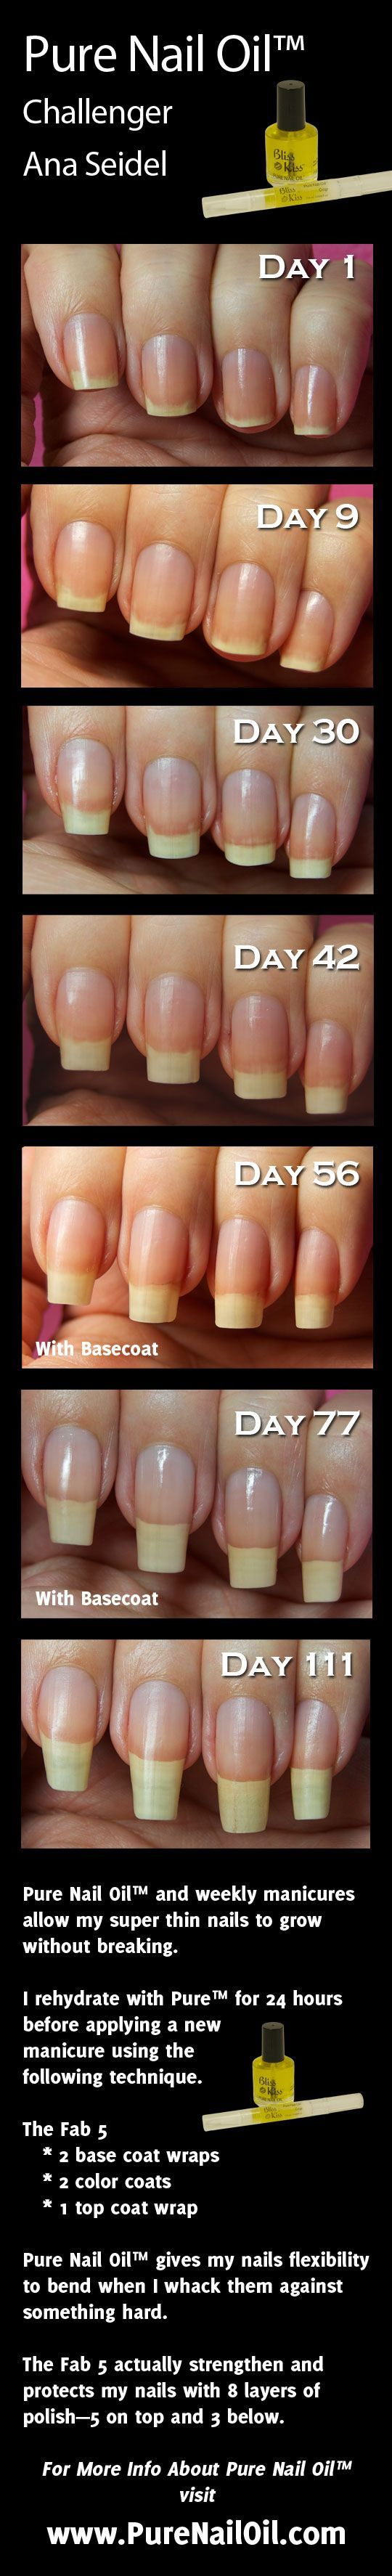 Real Asian Beauty: How To Make Nails Grow Stronger And Longer ...